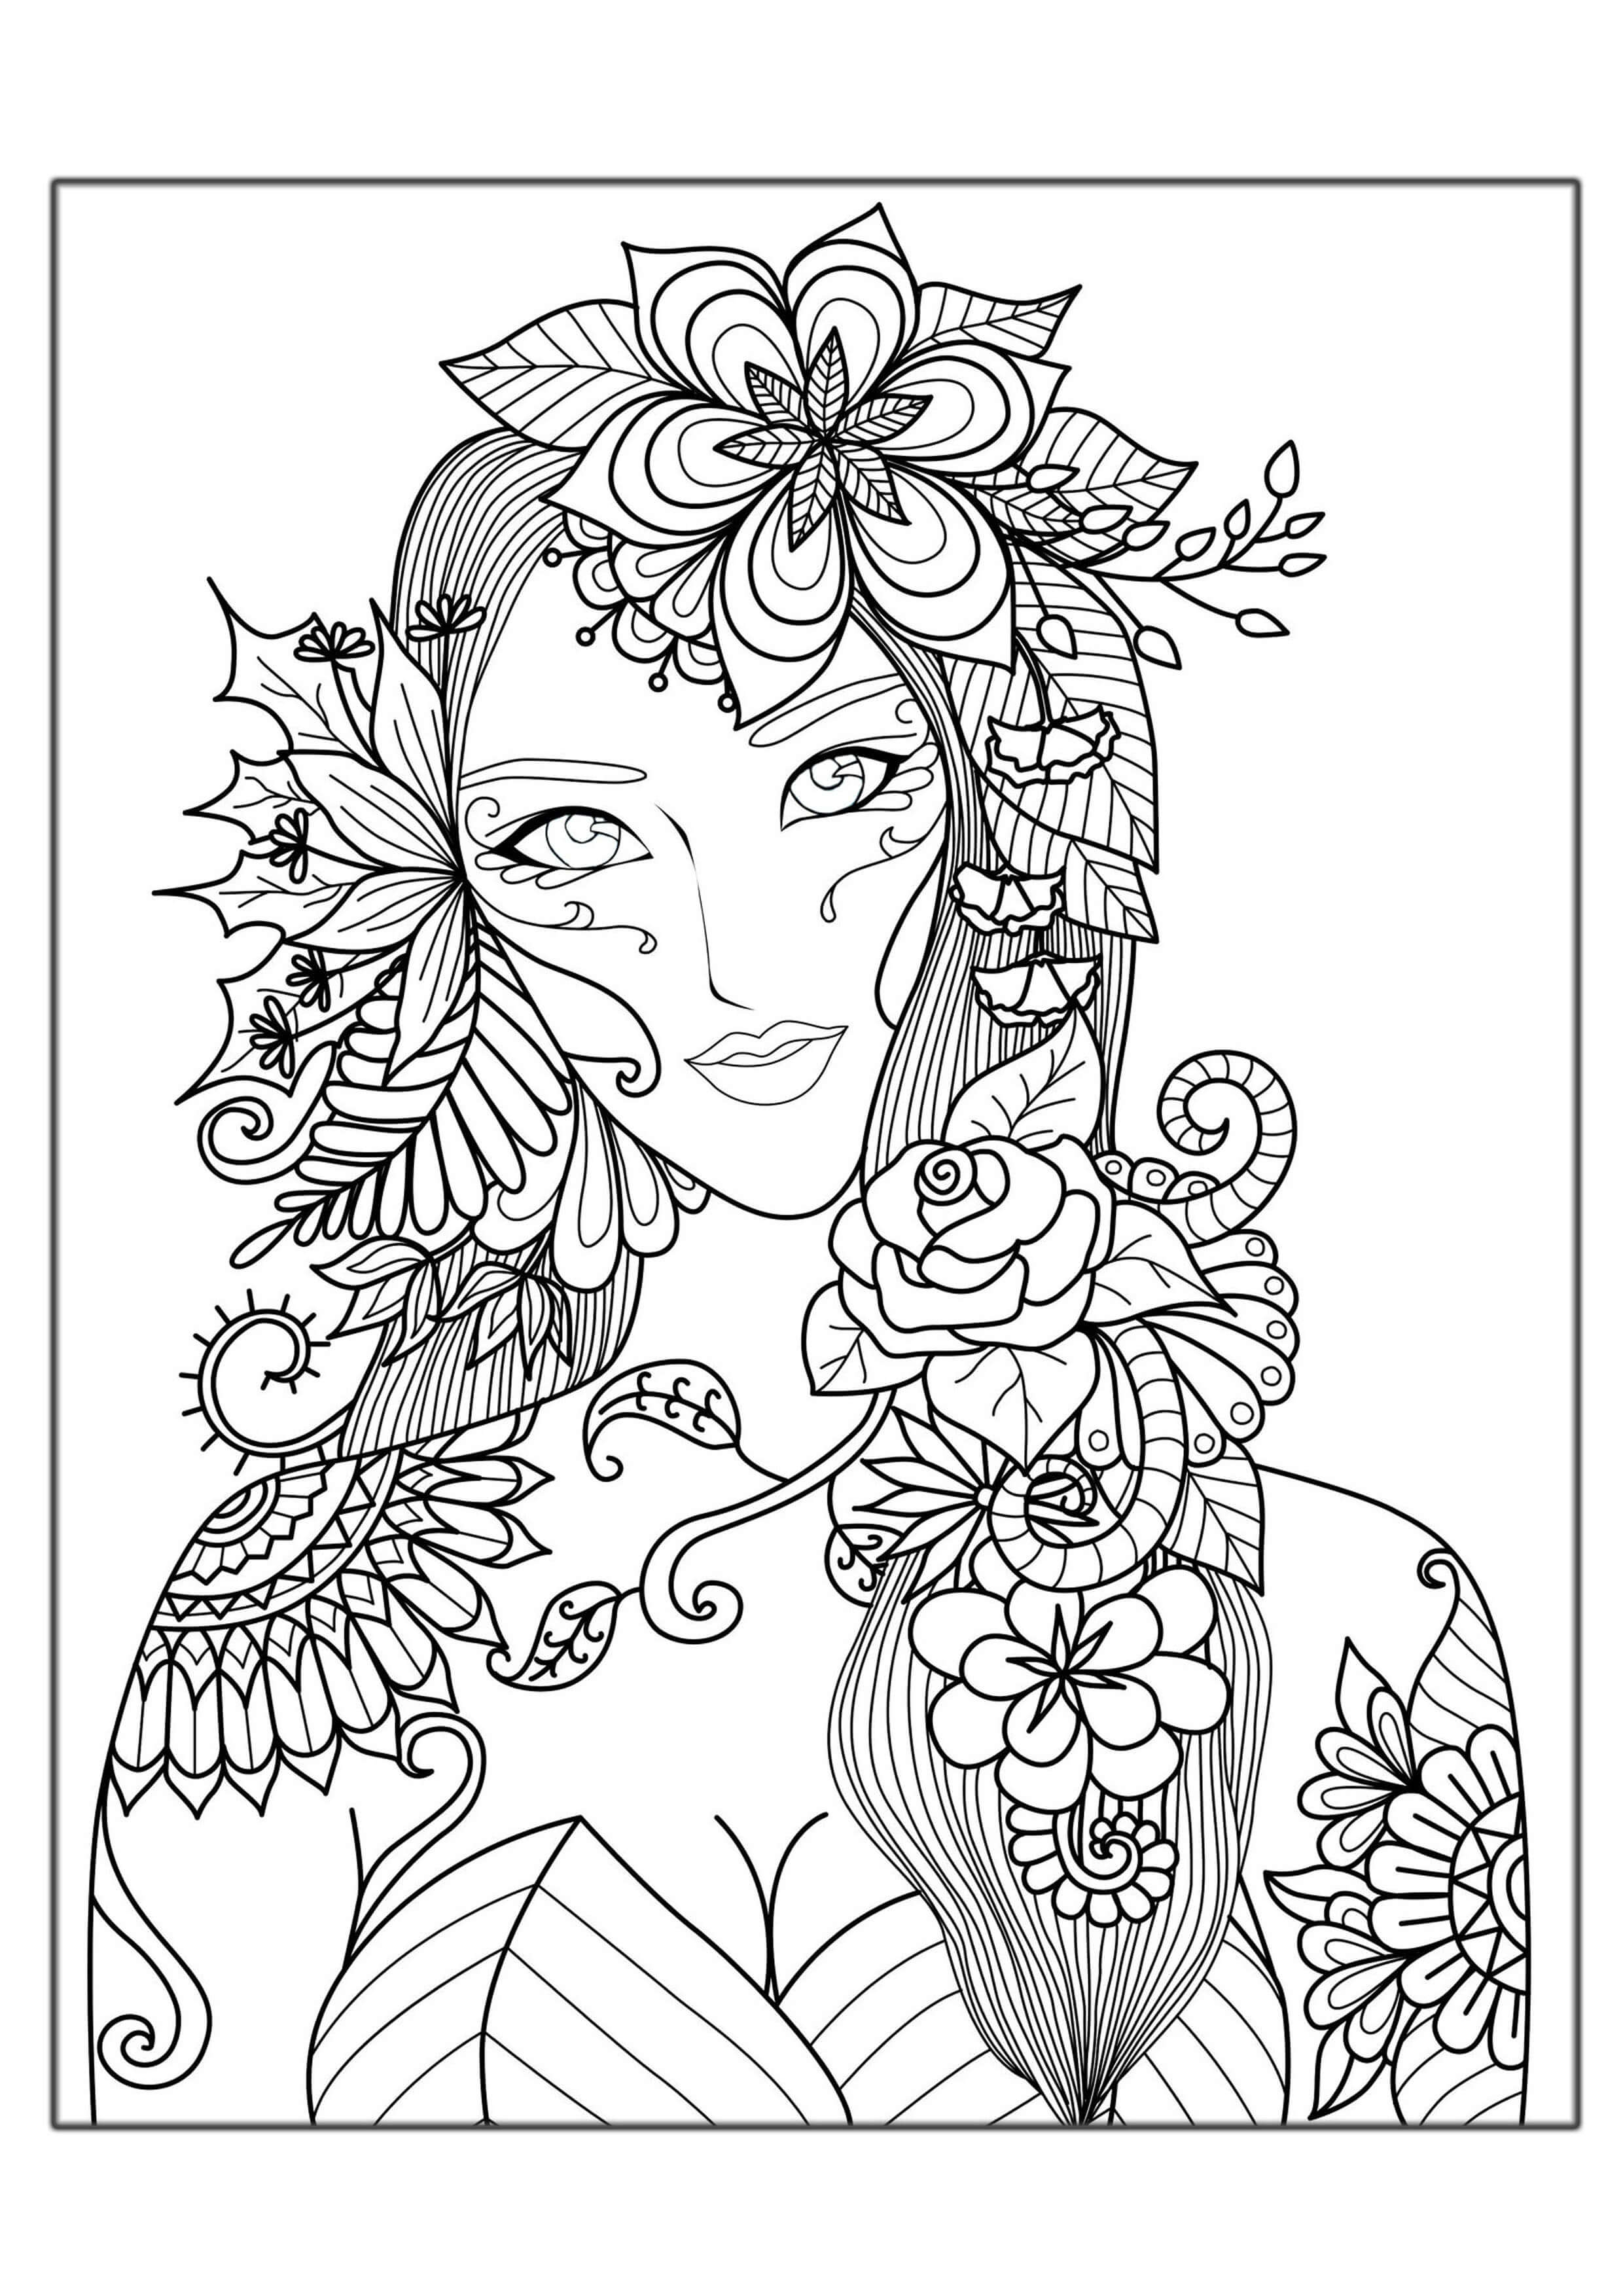 coloring worksheets hard hard coloring pages 15 coloring pages for kids hard coloring worksheets